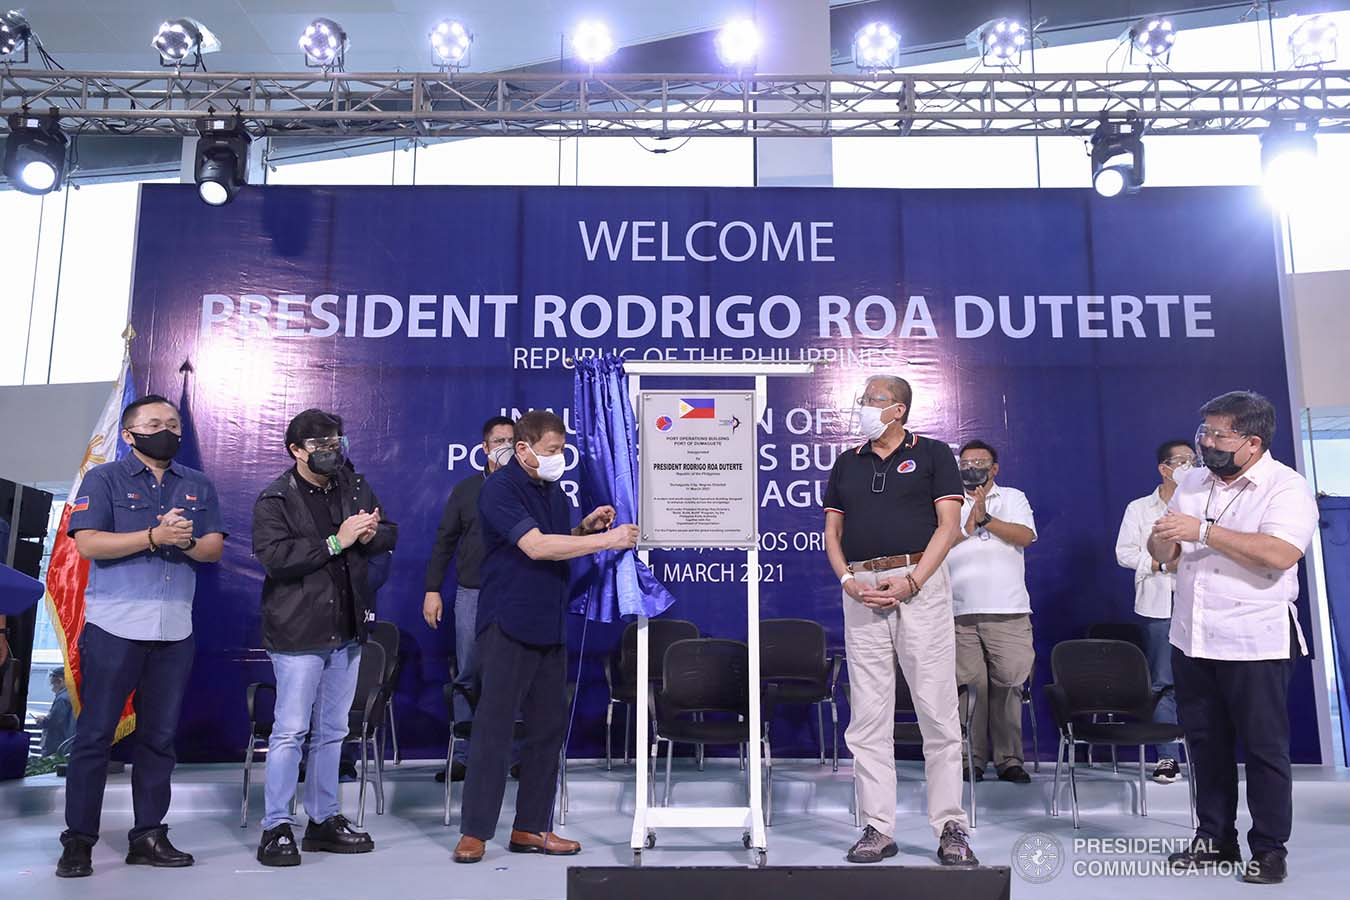 President Rodrigo Roa Duterte leads the unveiling of the marker of the Port Operations Building at the Port of Dumaguete in Dumaguete City, Negros Oriental on March 11, 2021. The President was assisted by Senator Christopher Lawrence Go, Transportation Secretary Arthur Tugade, Presidential Assistant for the Visayas Secretary Michael Lloyd Dino, and Philippine Ports Authority General Manager Jay Daniel Santiago. ACE MORANDANTE/ PRESIDENTIAL PHOTO